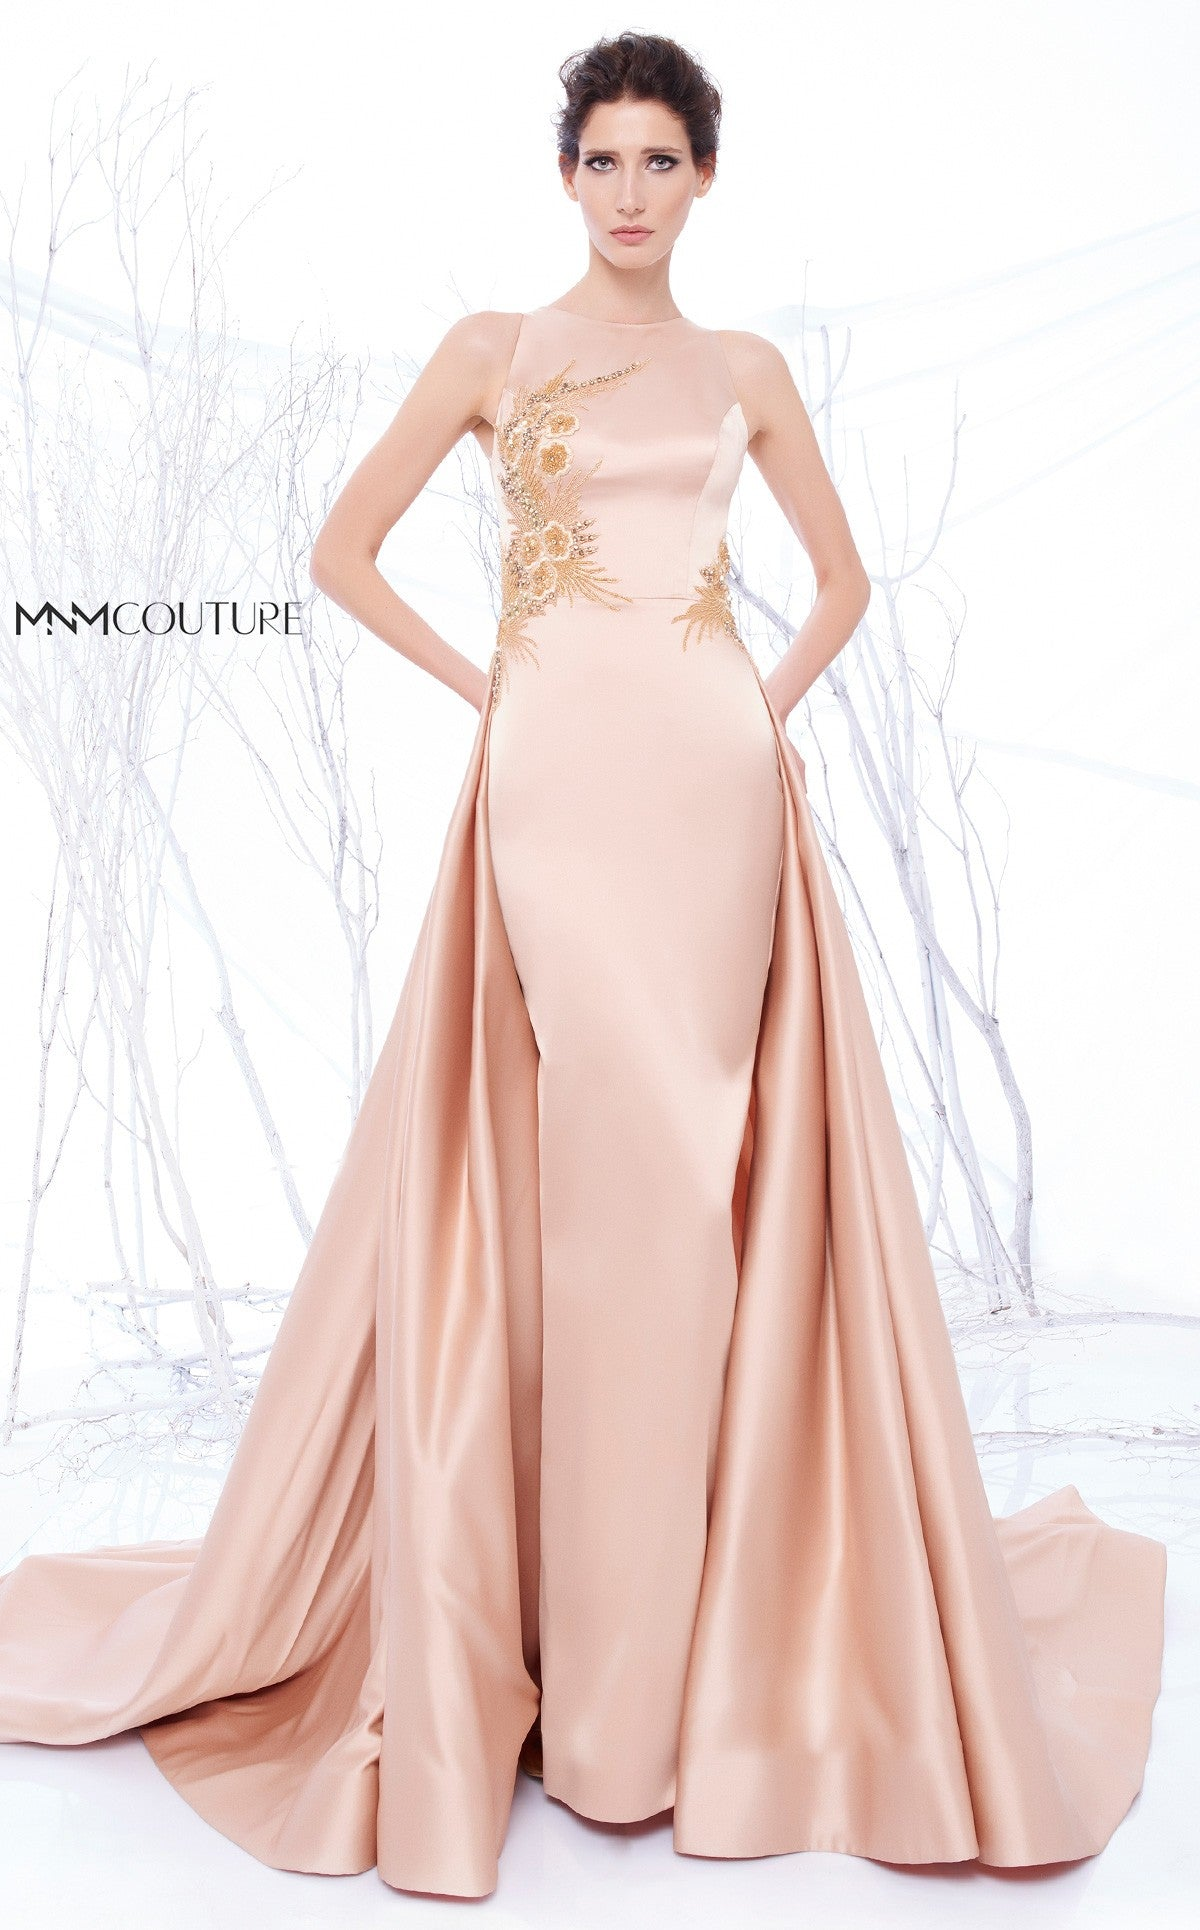 MNM COUTURE N205